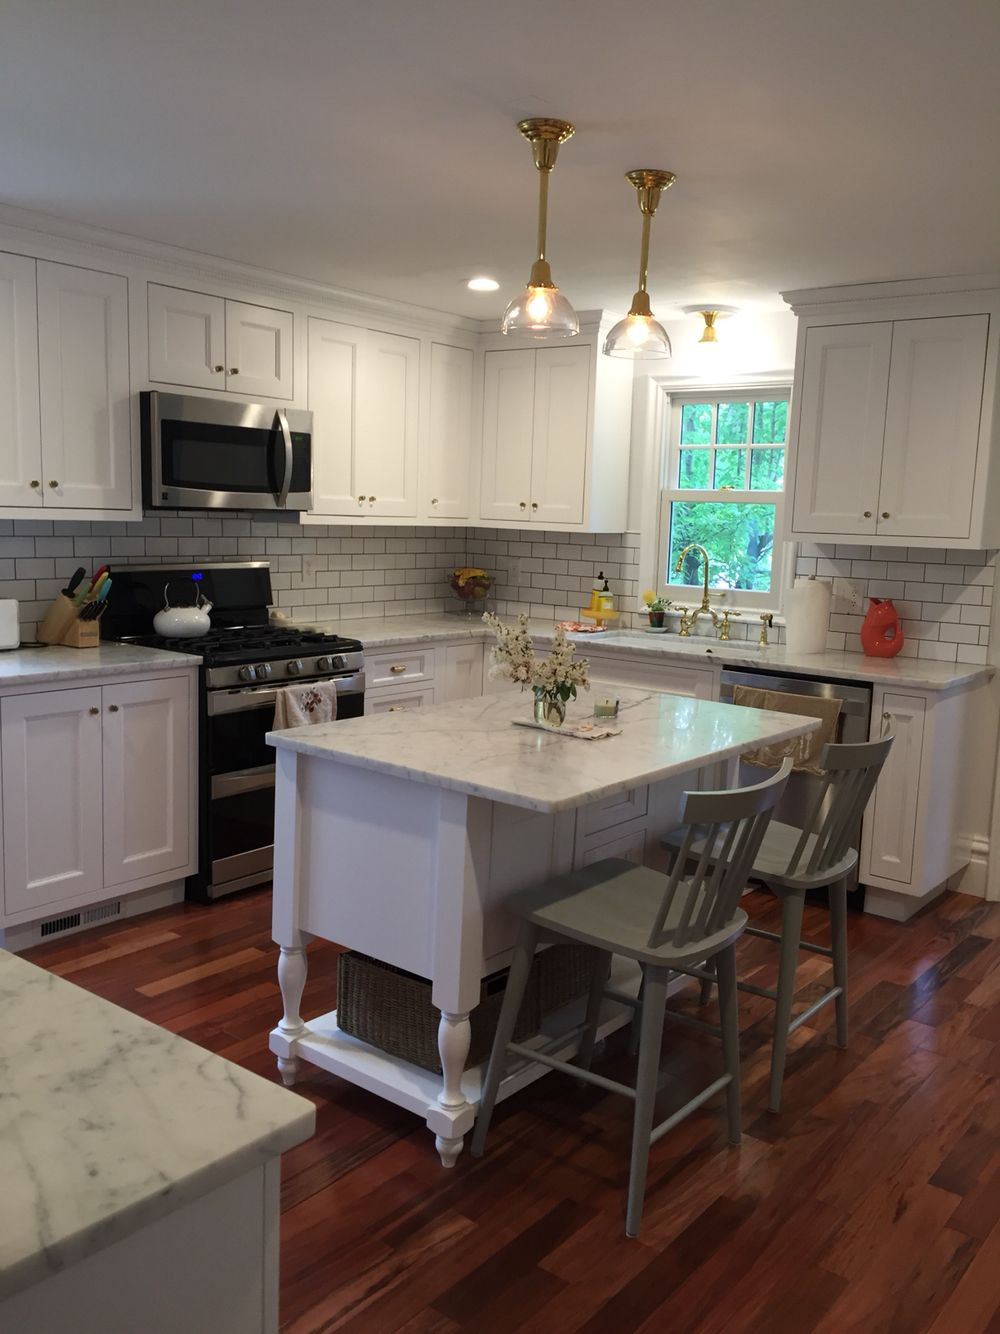 White Candelight Chesapeake Inset Cabinets, Honed Statuarietto Marble  Counters, Brass Hardware, Red Tiger